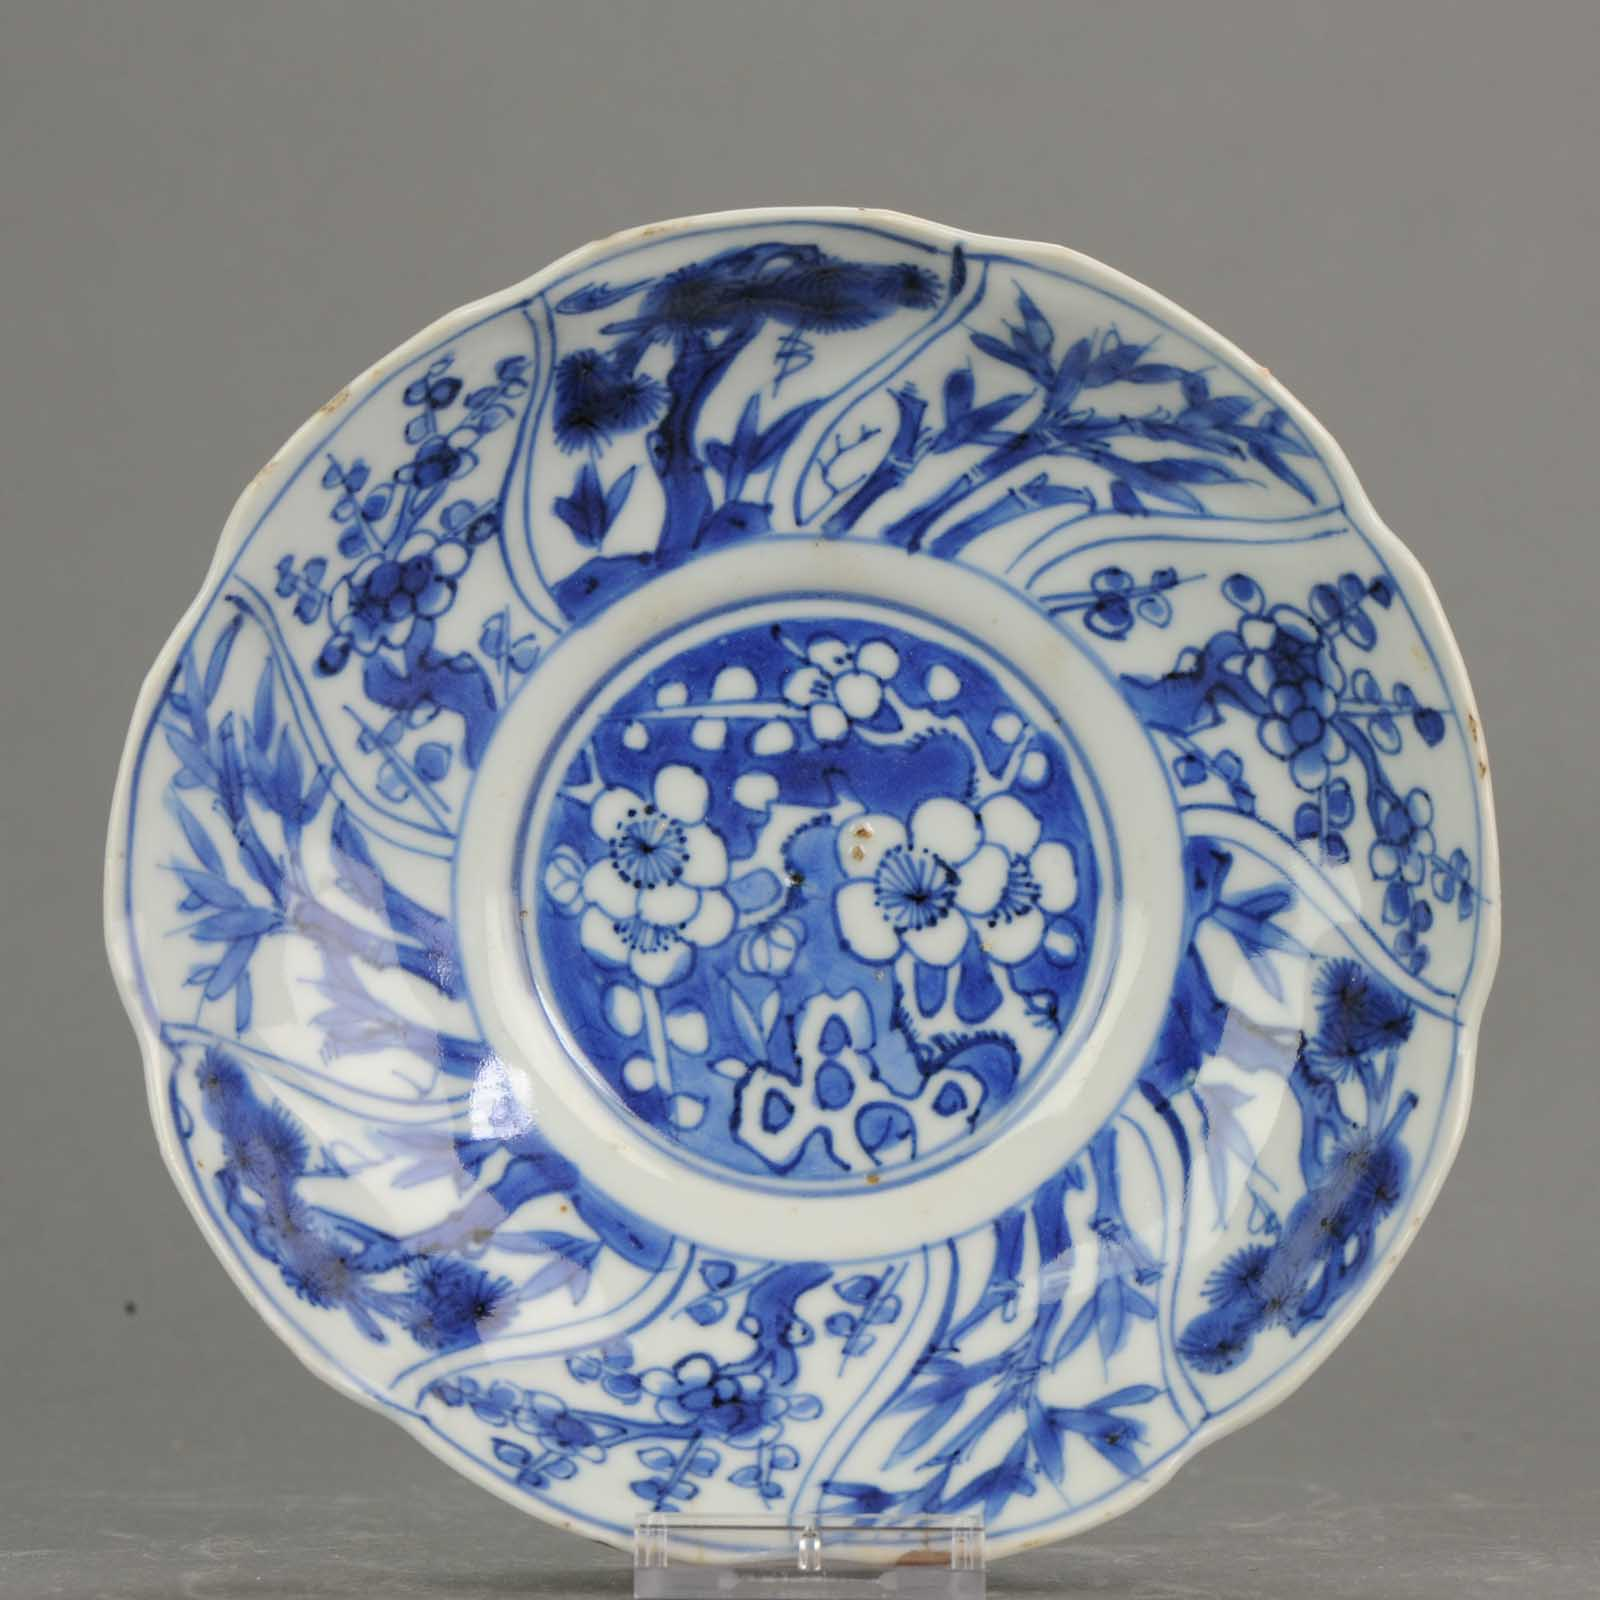 Asian lady image on antique dishes #15